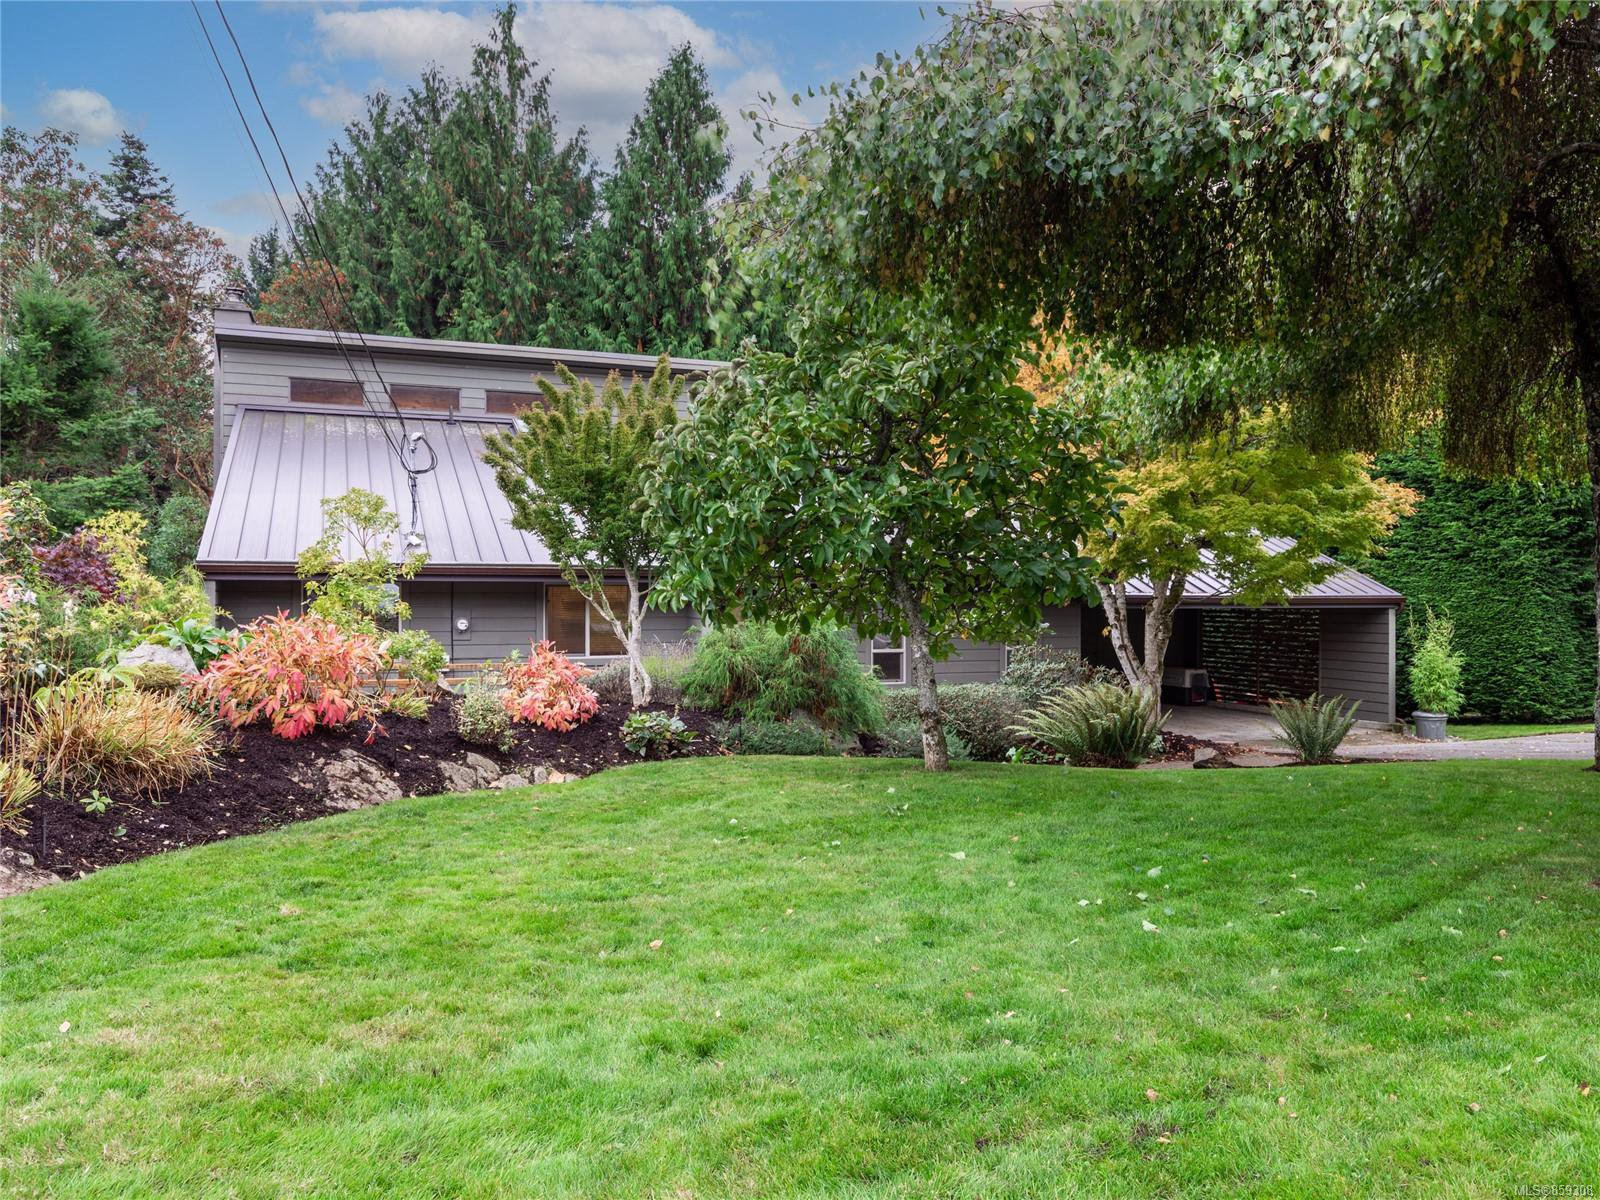 Main Photo: 1445 Rose Ann Dr in : Na Departure Bay House for sale (Nanaimo)  : MLS®# 859308